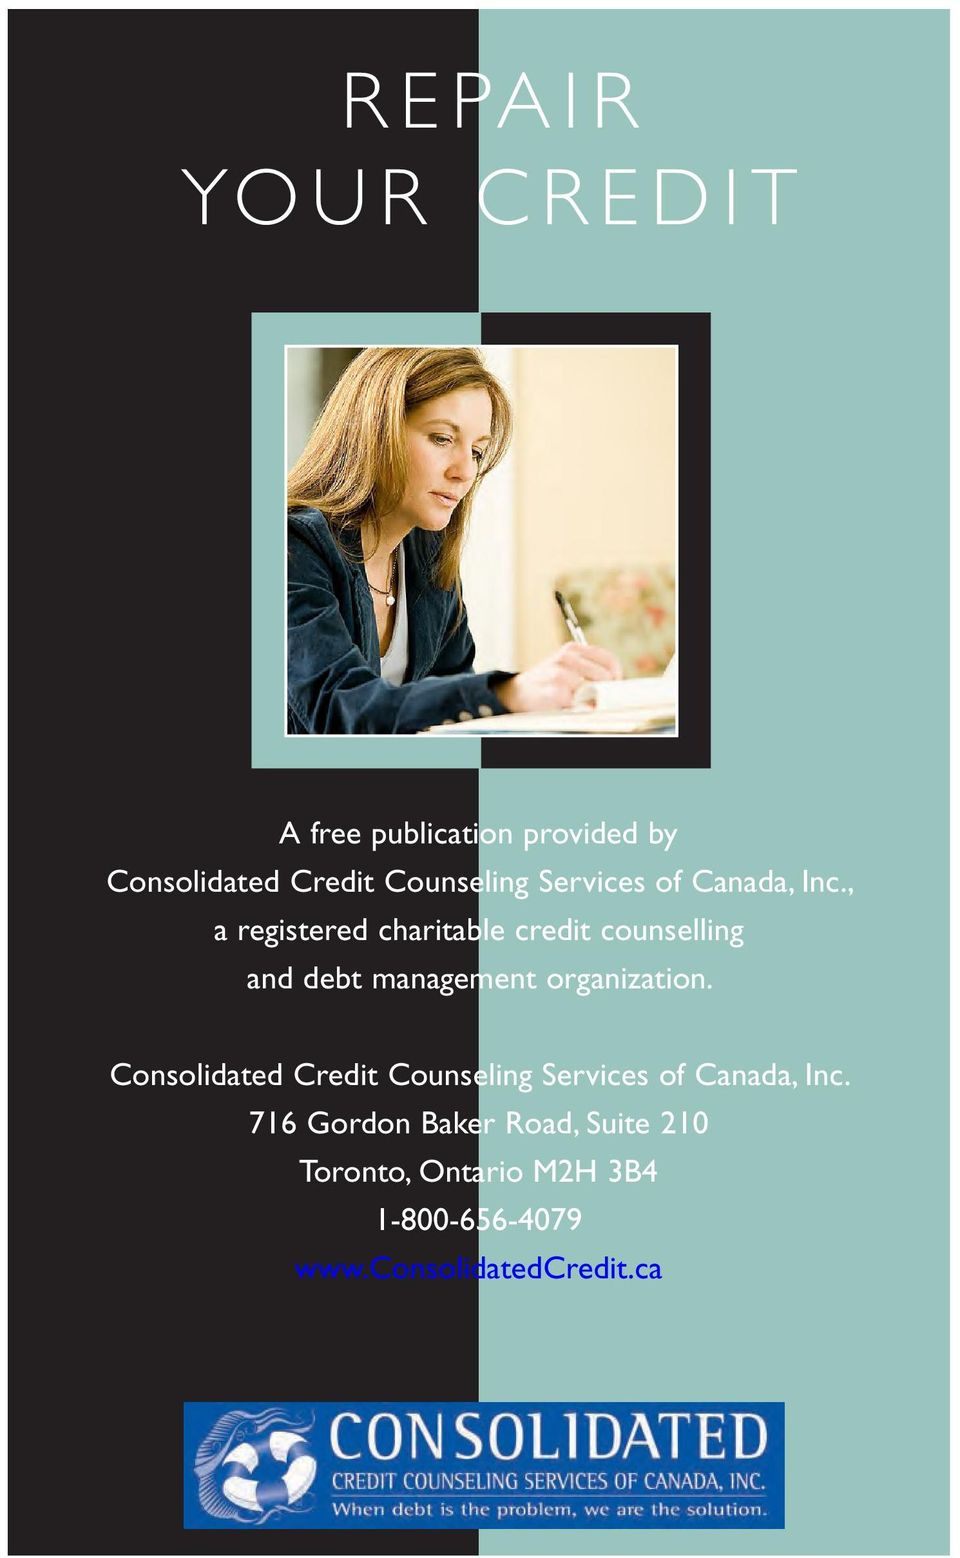 , a registered charitable credit counselling and debt management organization.